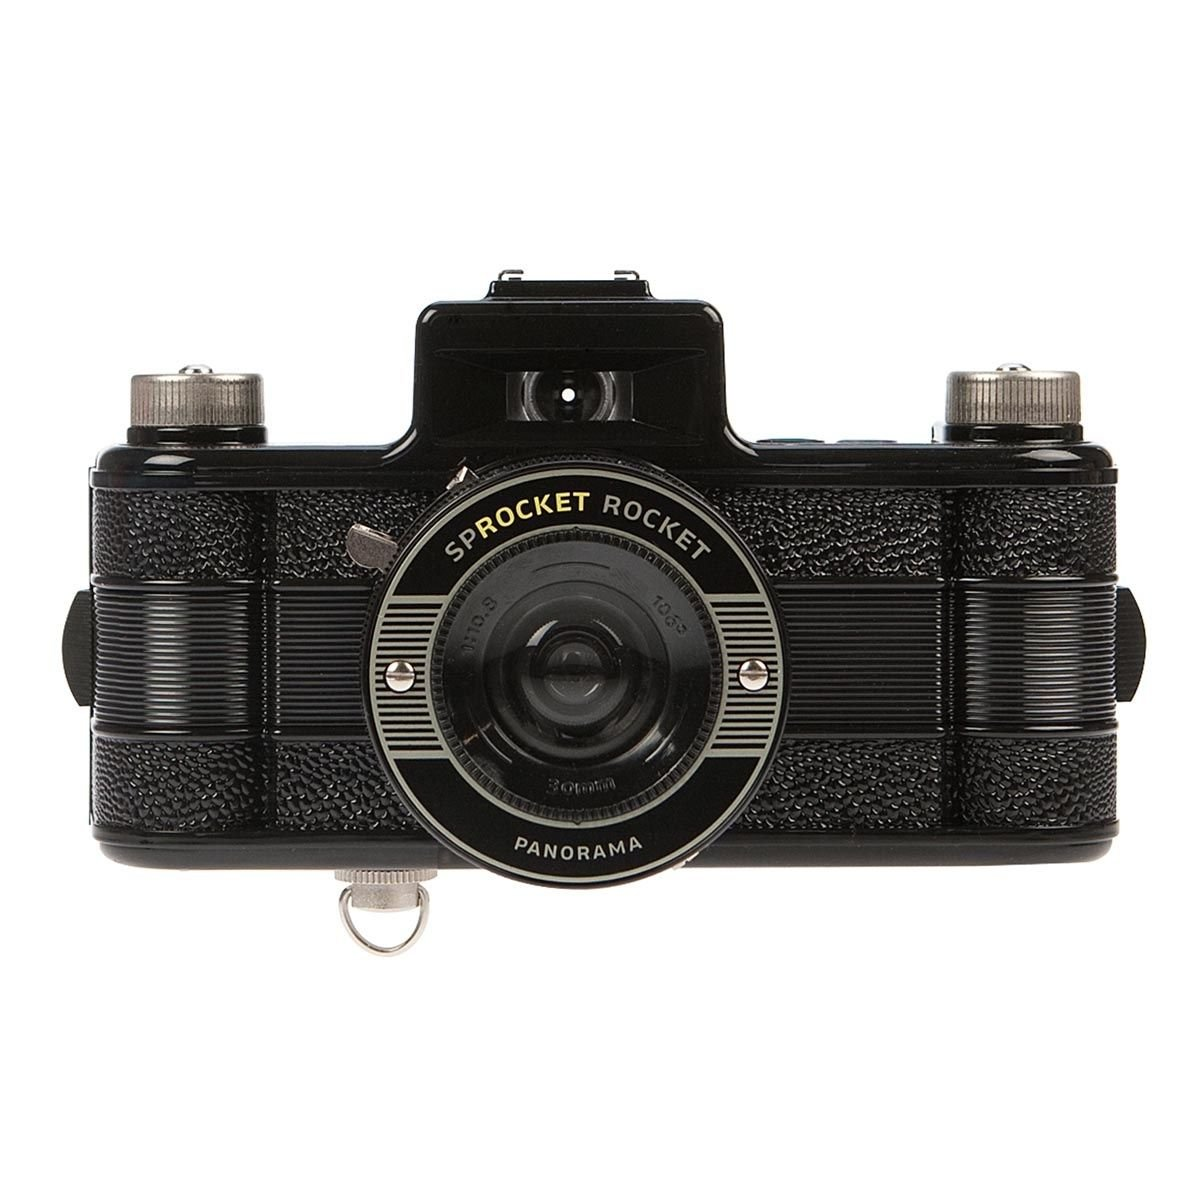 15位:Lomography Sprocket Rocket